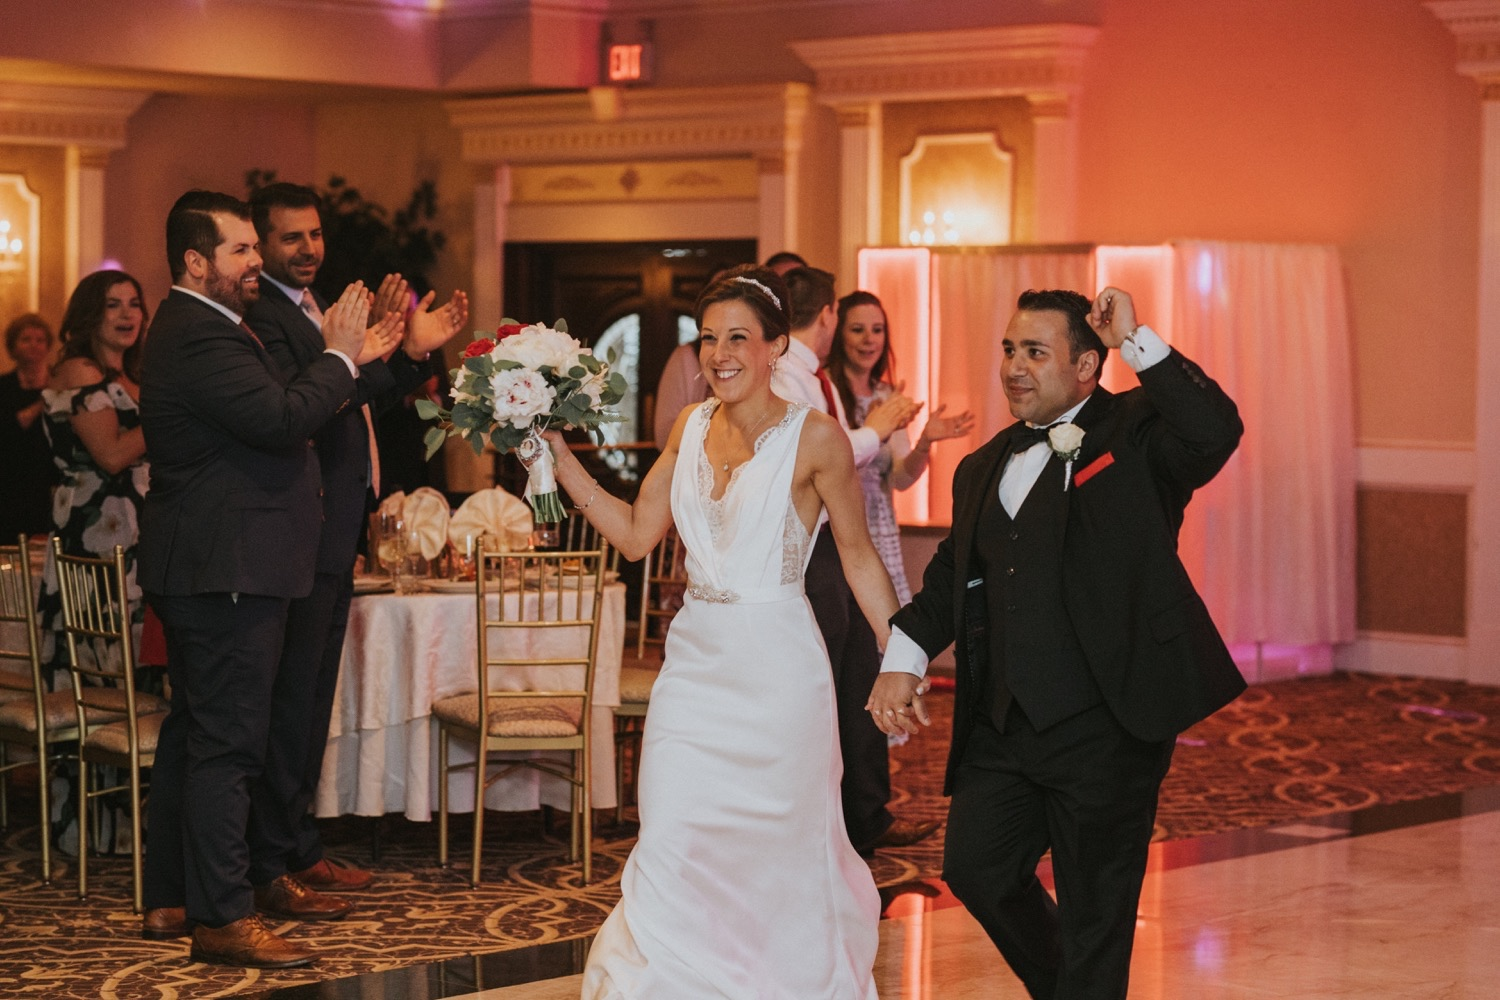 Hudson Valley Wedding Photographer, New York Wedding Photographer, Villa Barone Wedding, Westcheste